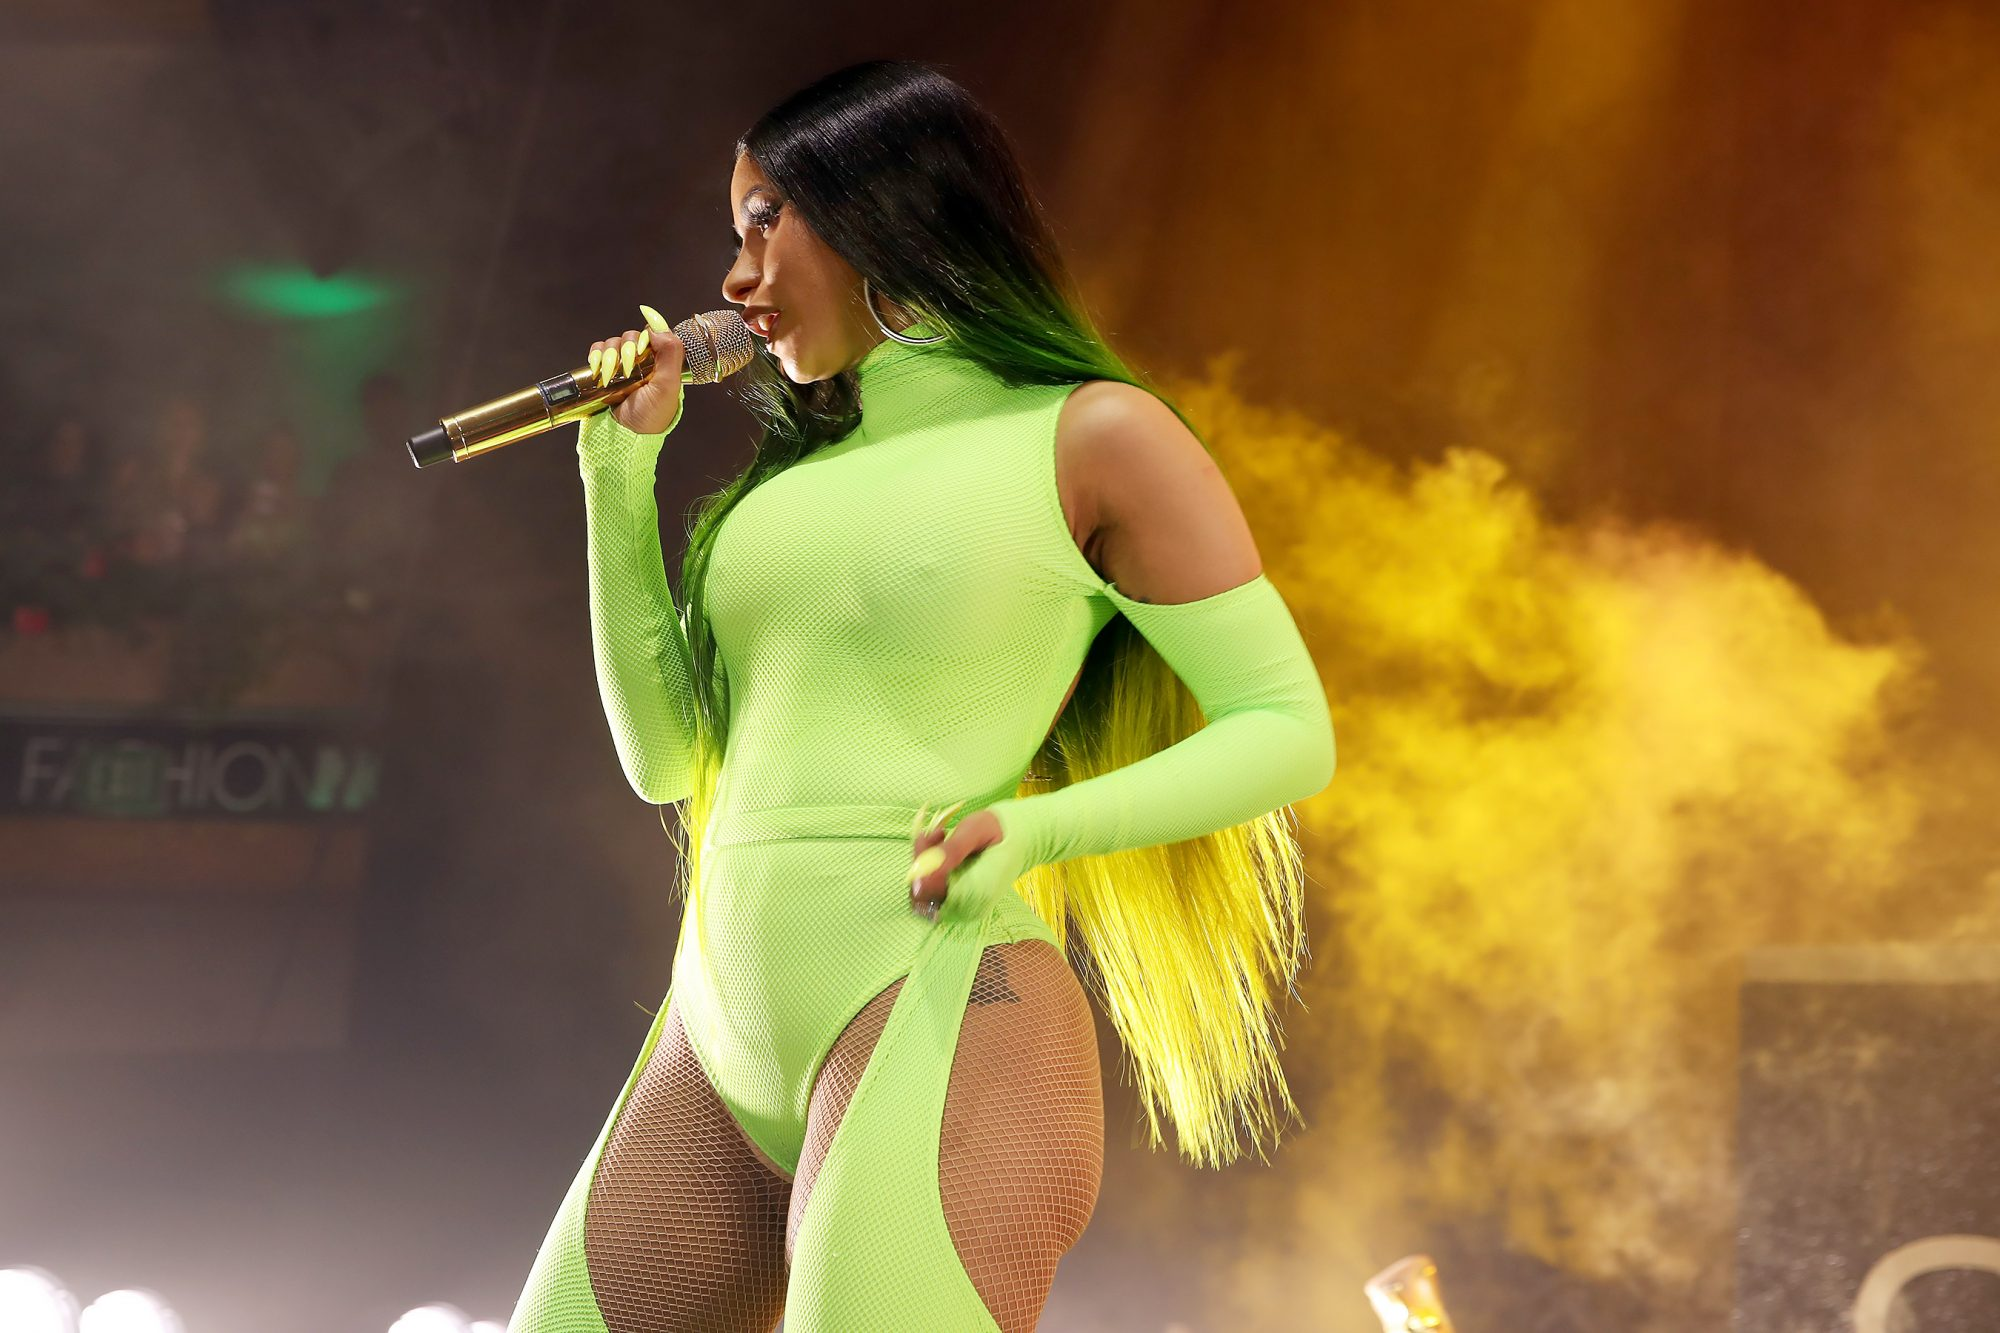 Cardi B performs onstage as Fashion Nova Presents: Party With Cardi at Hollywood Palladium on May 9, 2019